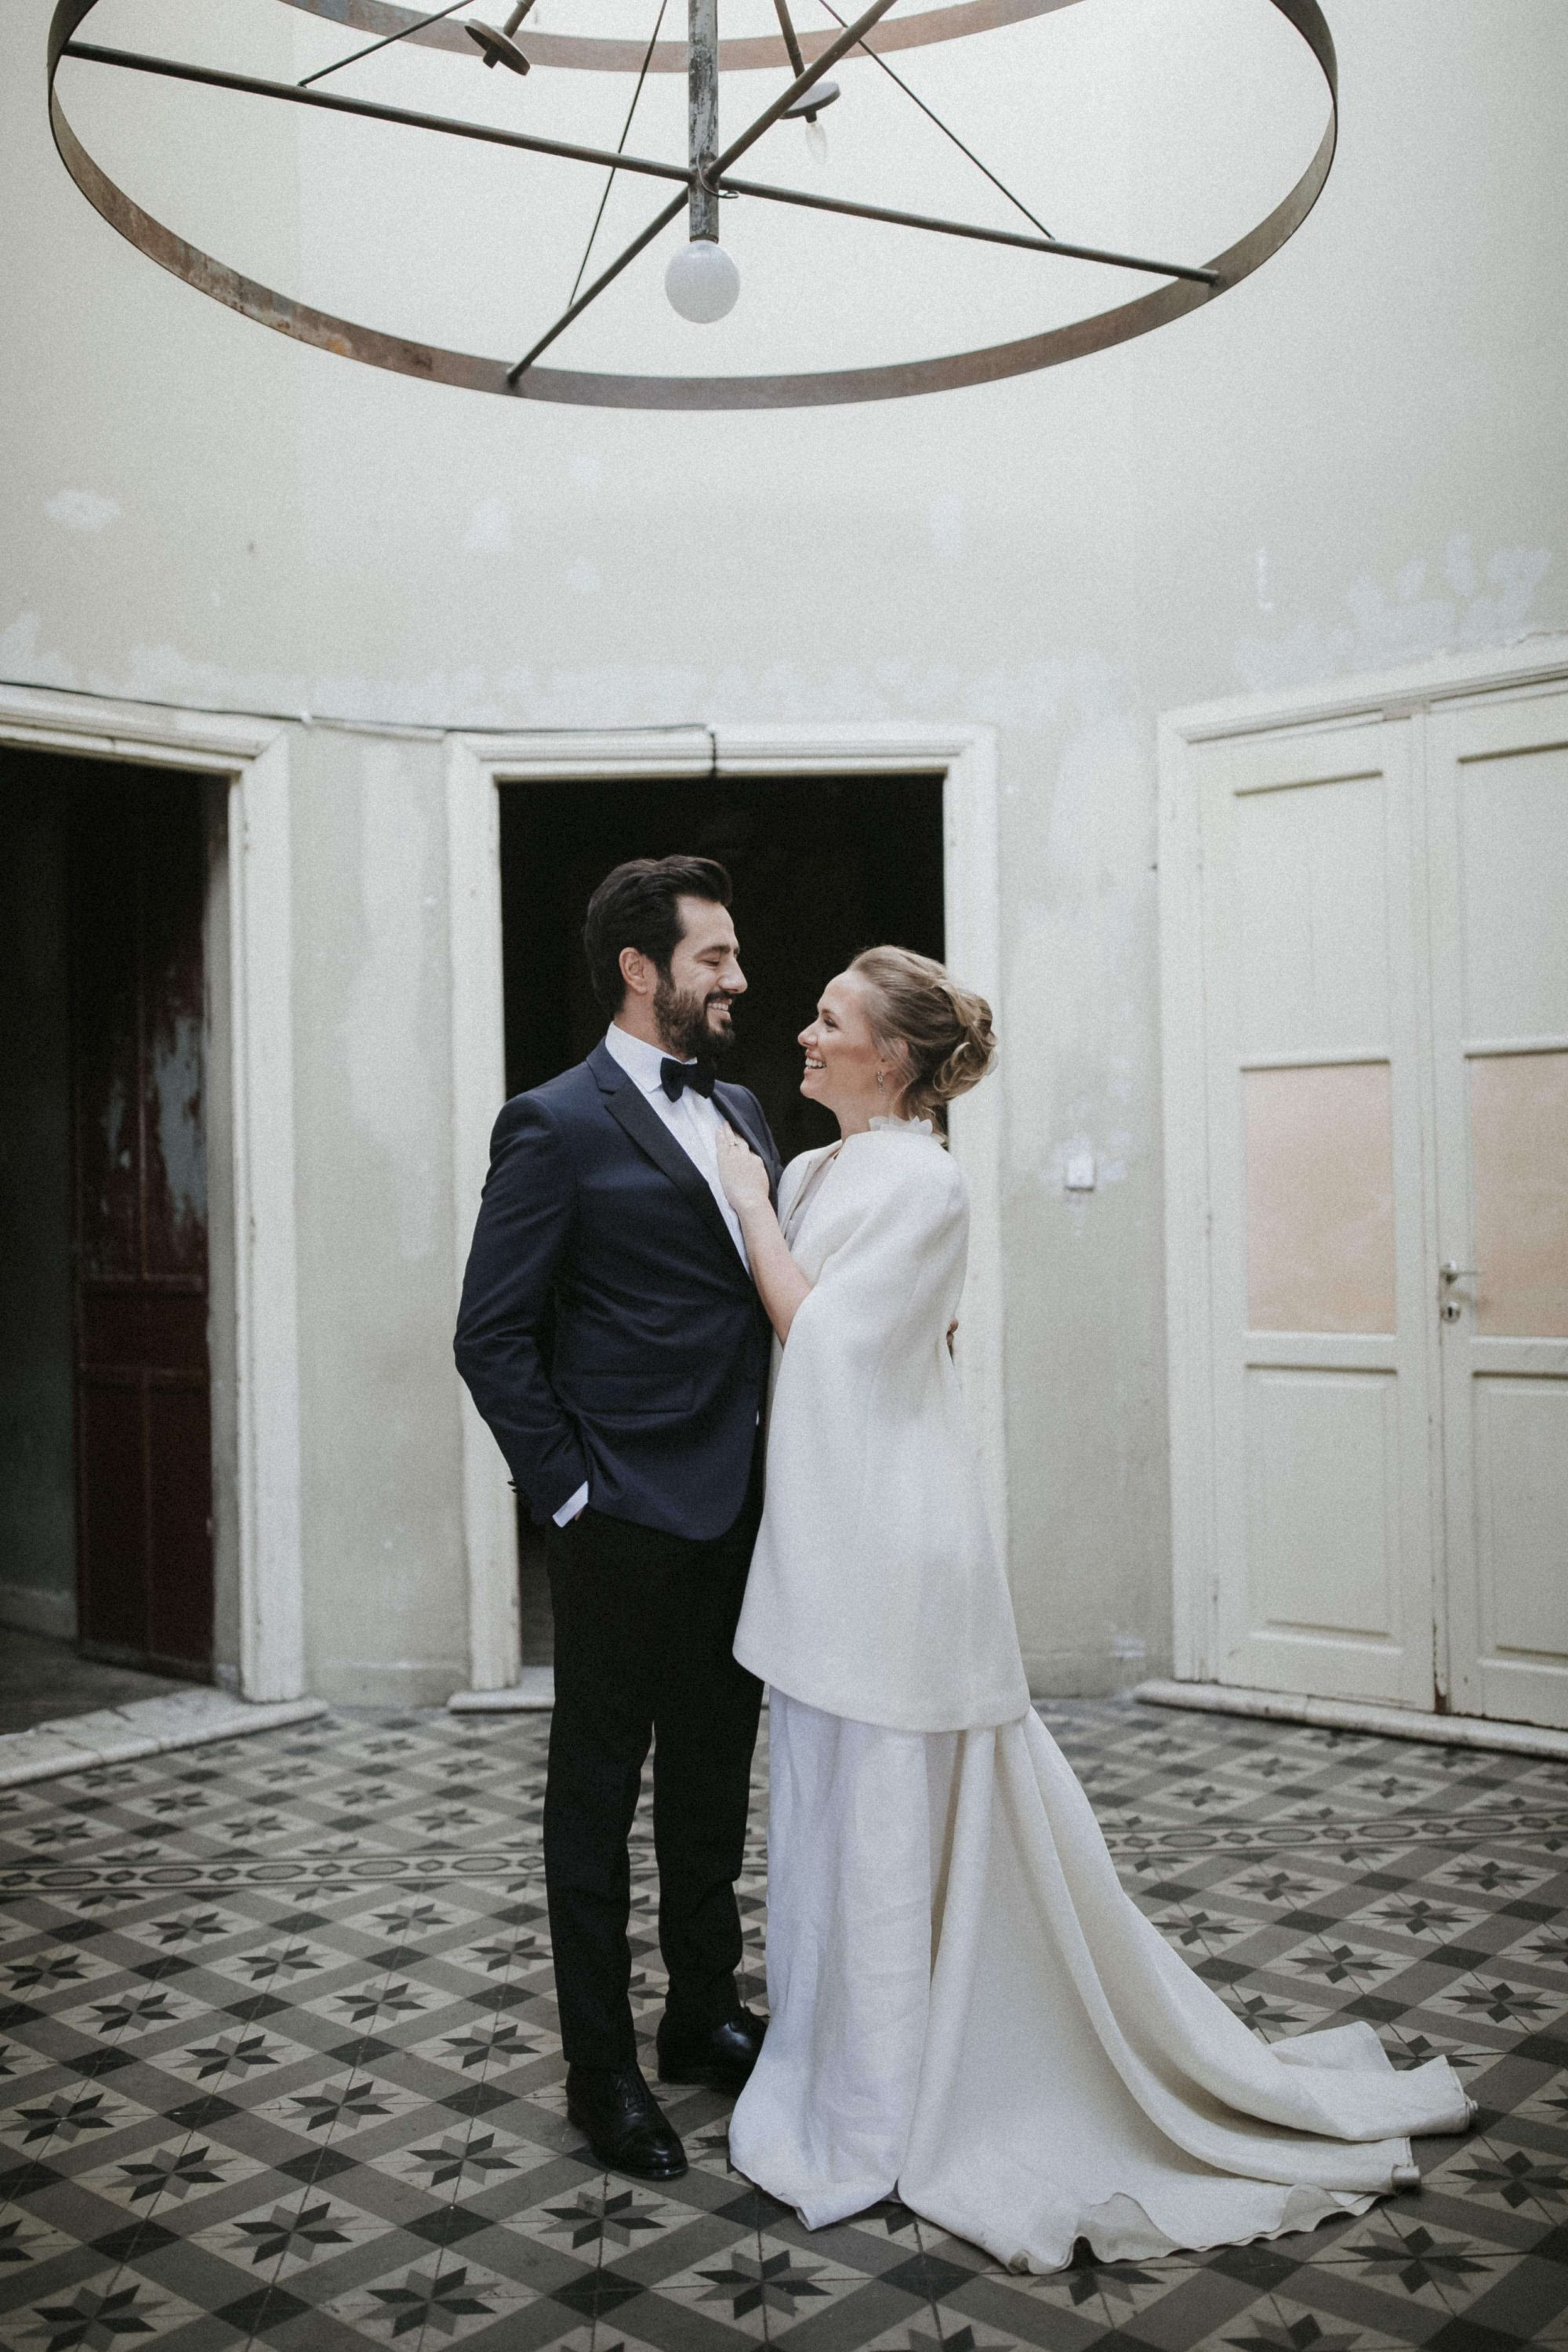 Idil & Emre Wedding In Thessaloniki Greece White On Black Studio Photography (3)